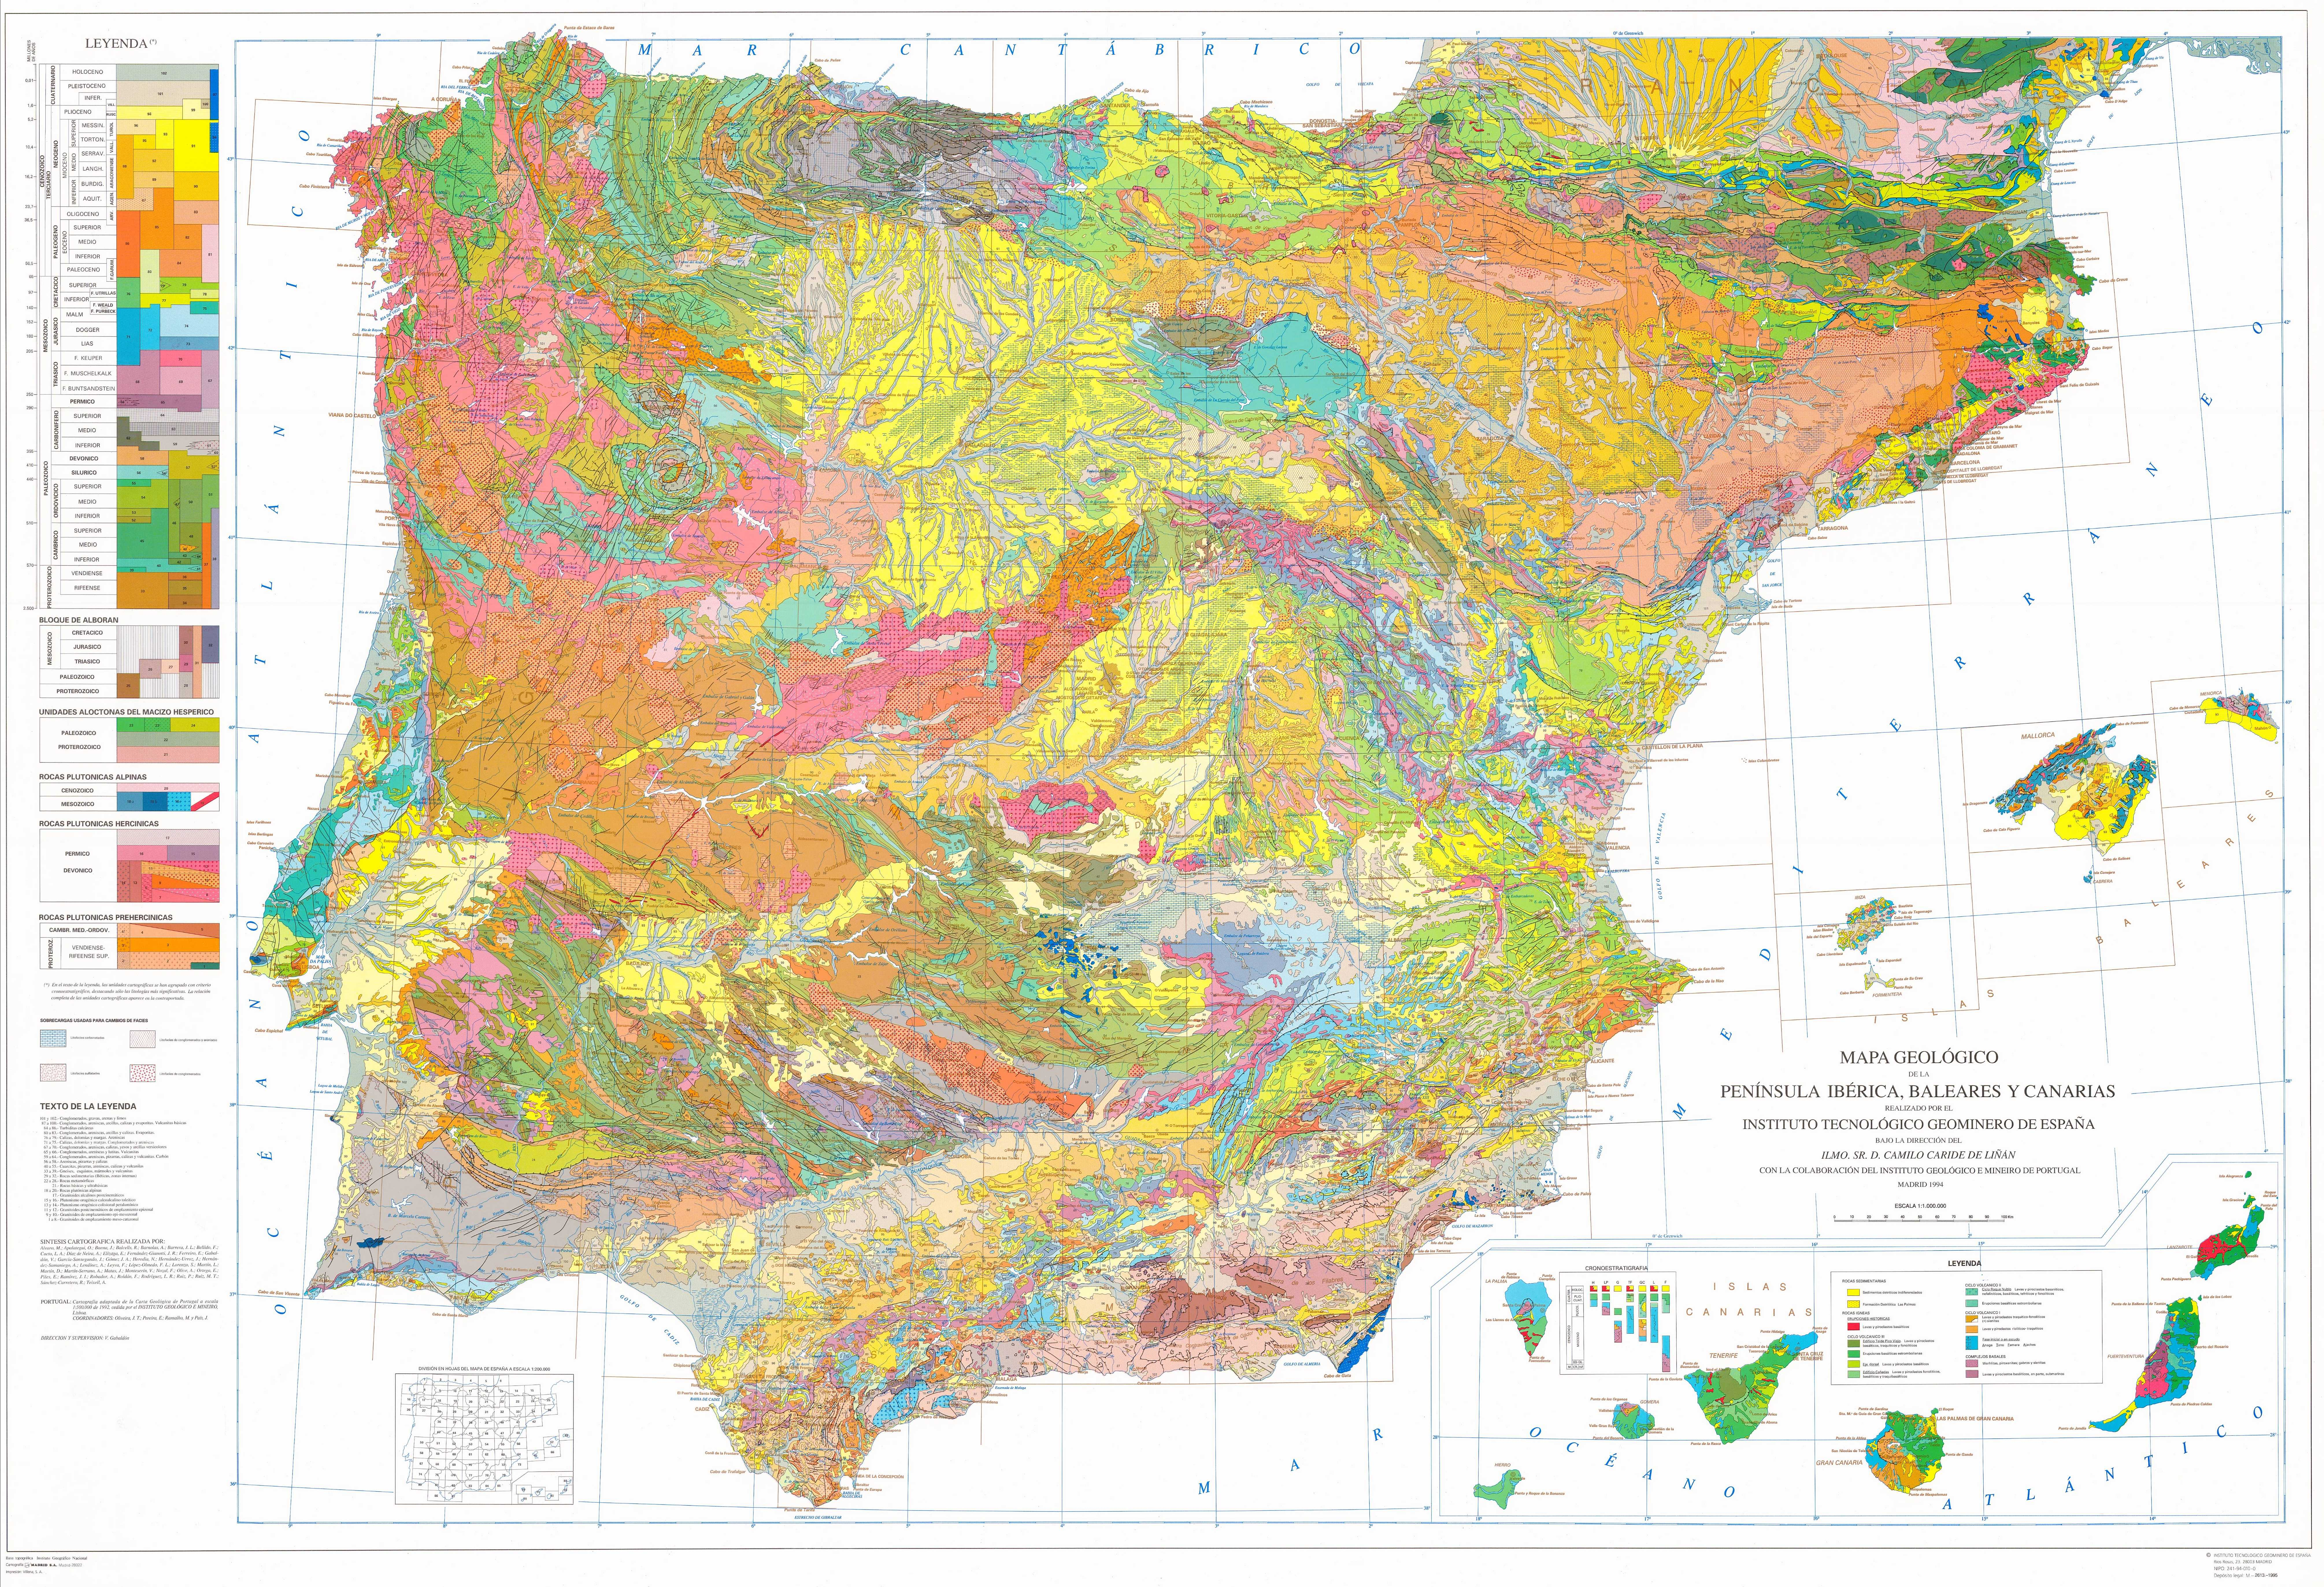 Geological map of the iberian peninsula the balearic islands and distributions gumiabroncs